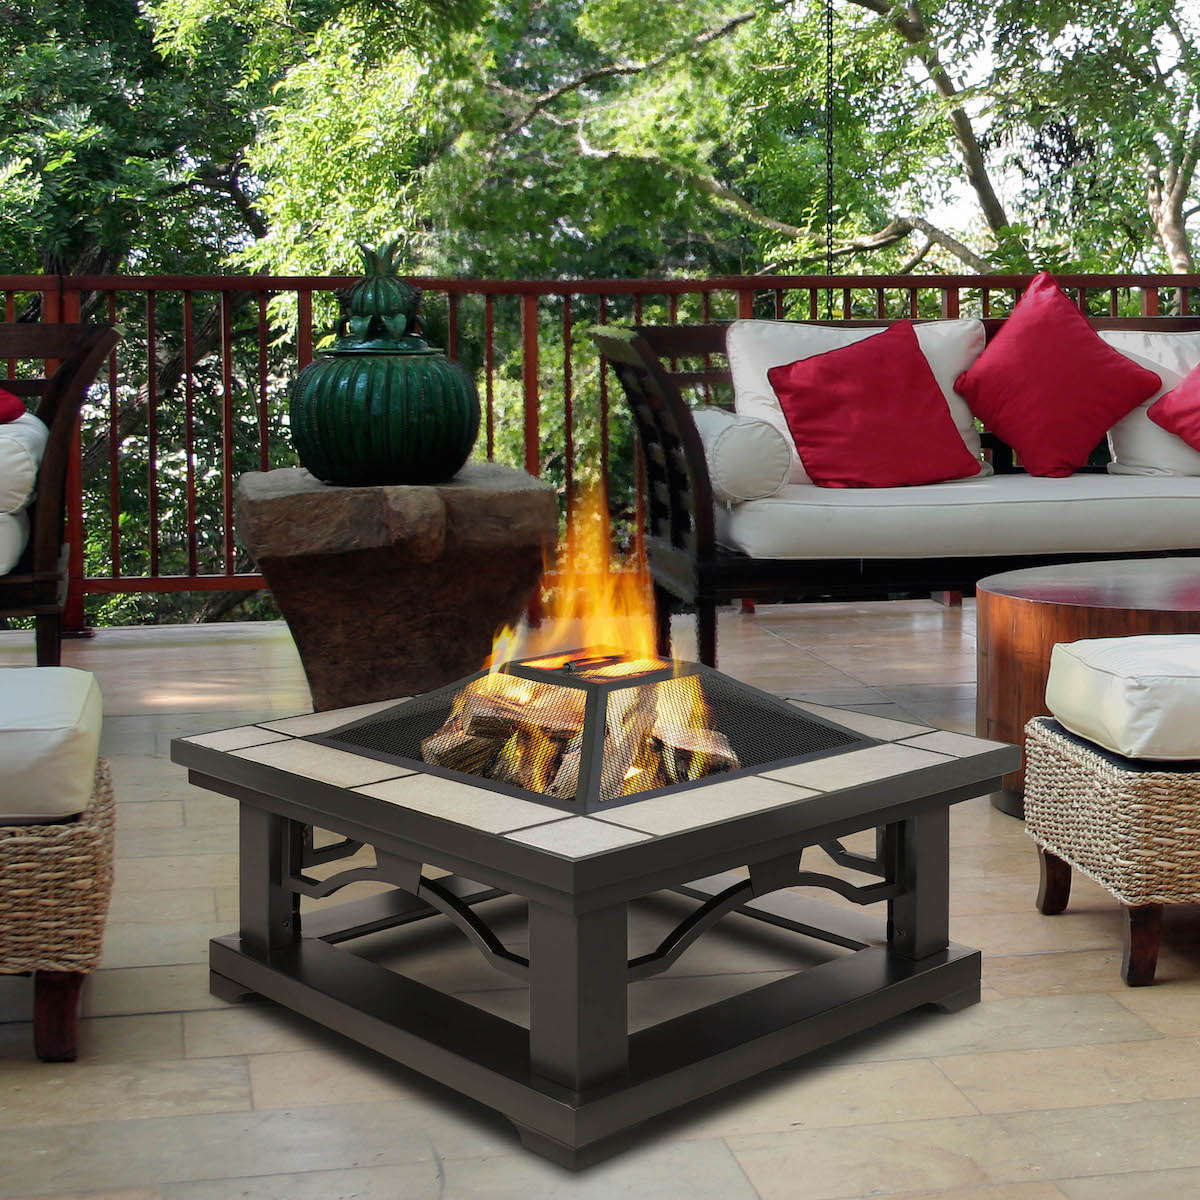 Real Flame Crestone Wood Burning Outdoor Fire Pit with ... on For Living Lawrence Fire Pit id=50119